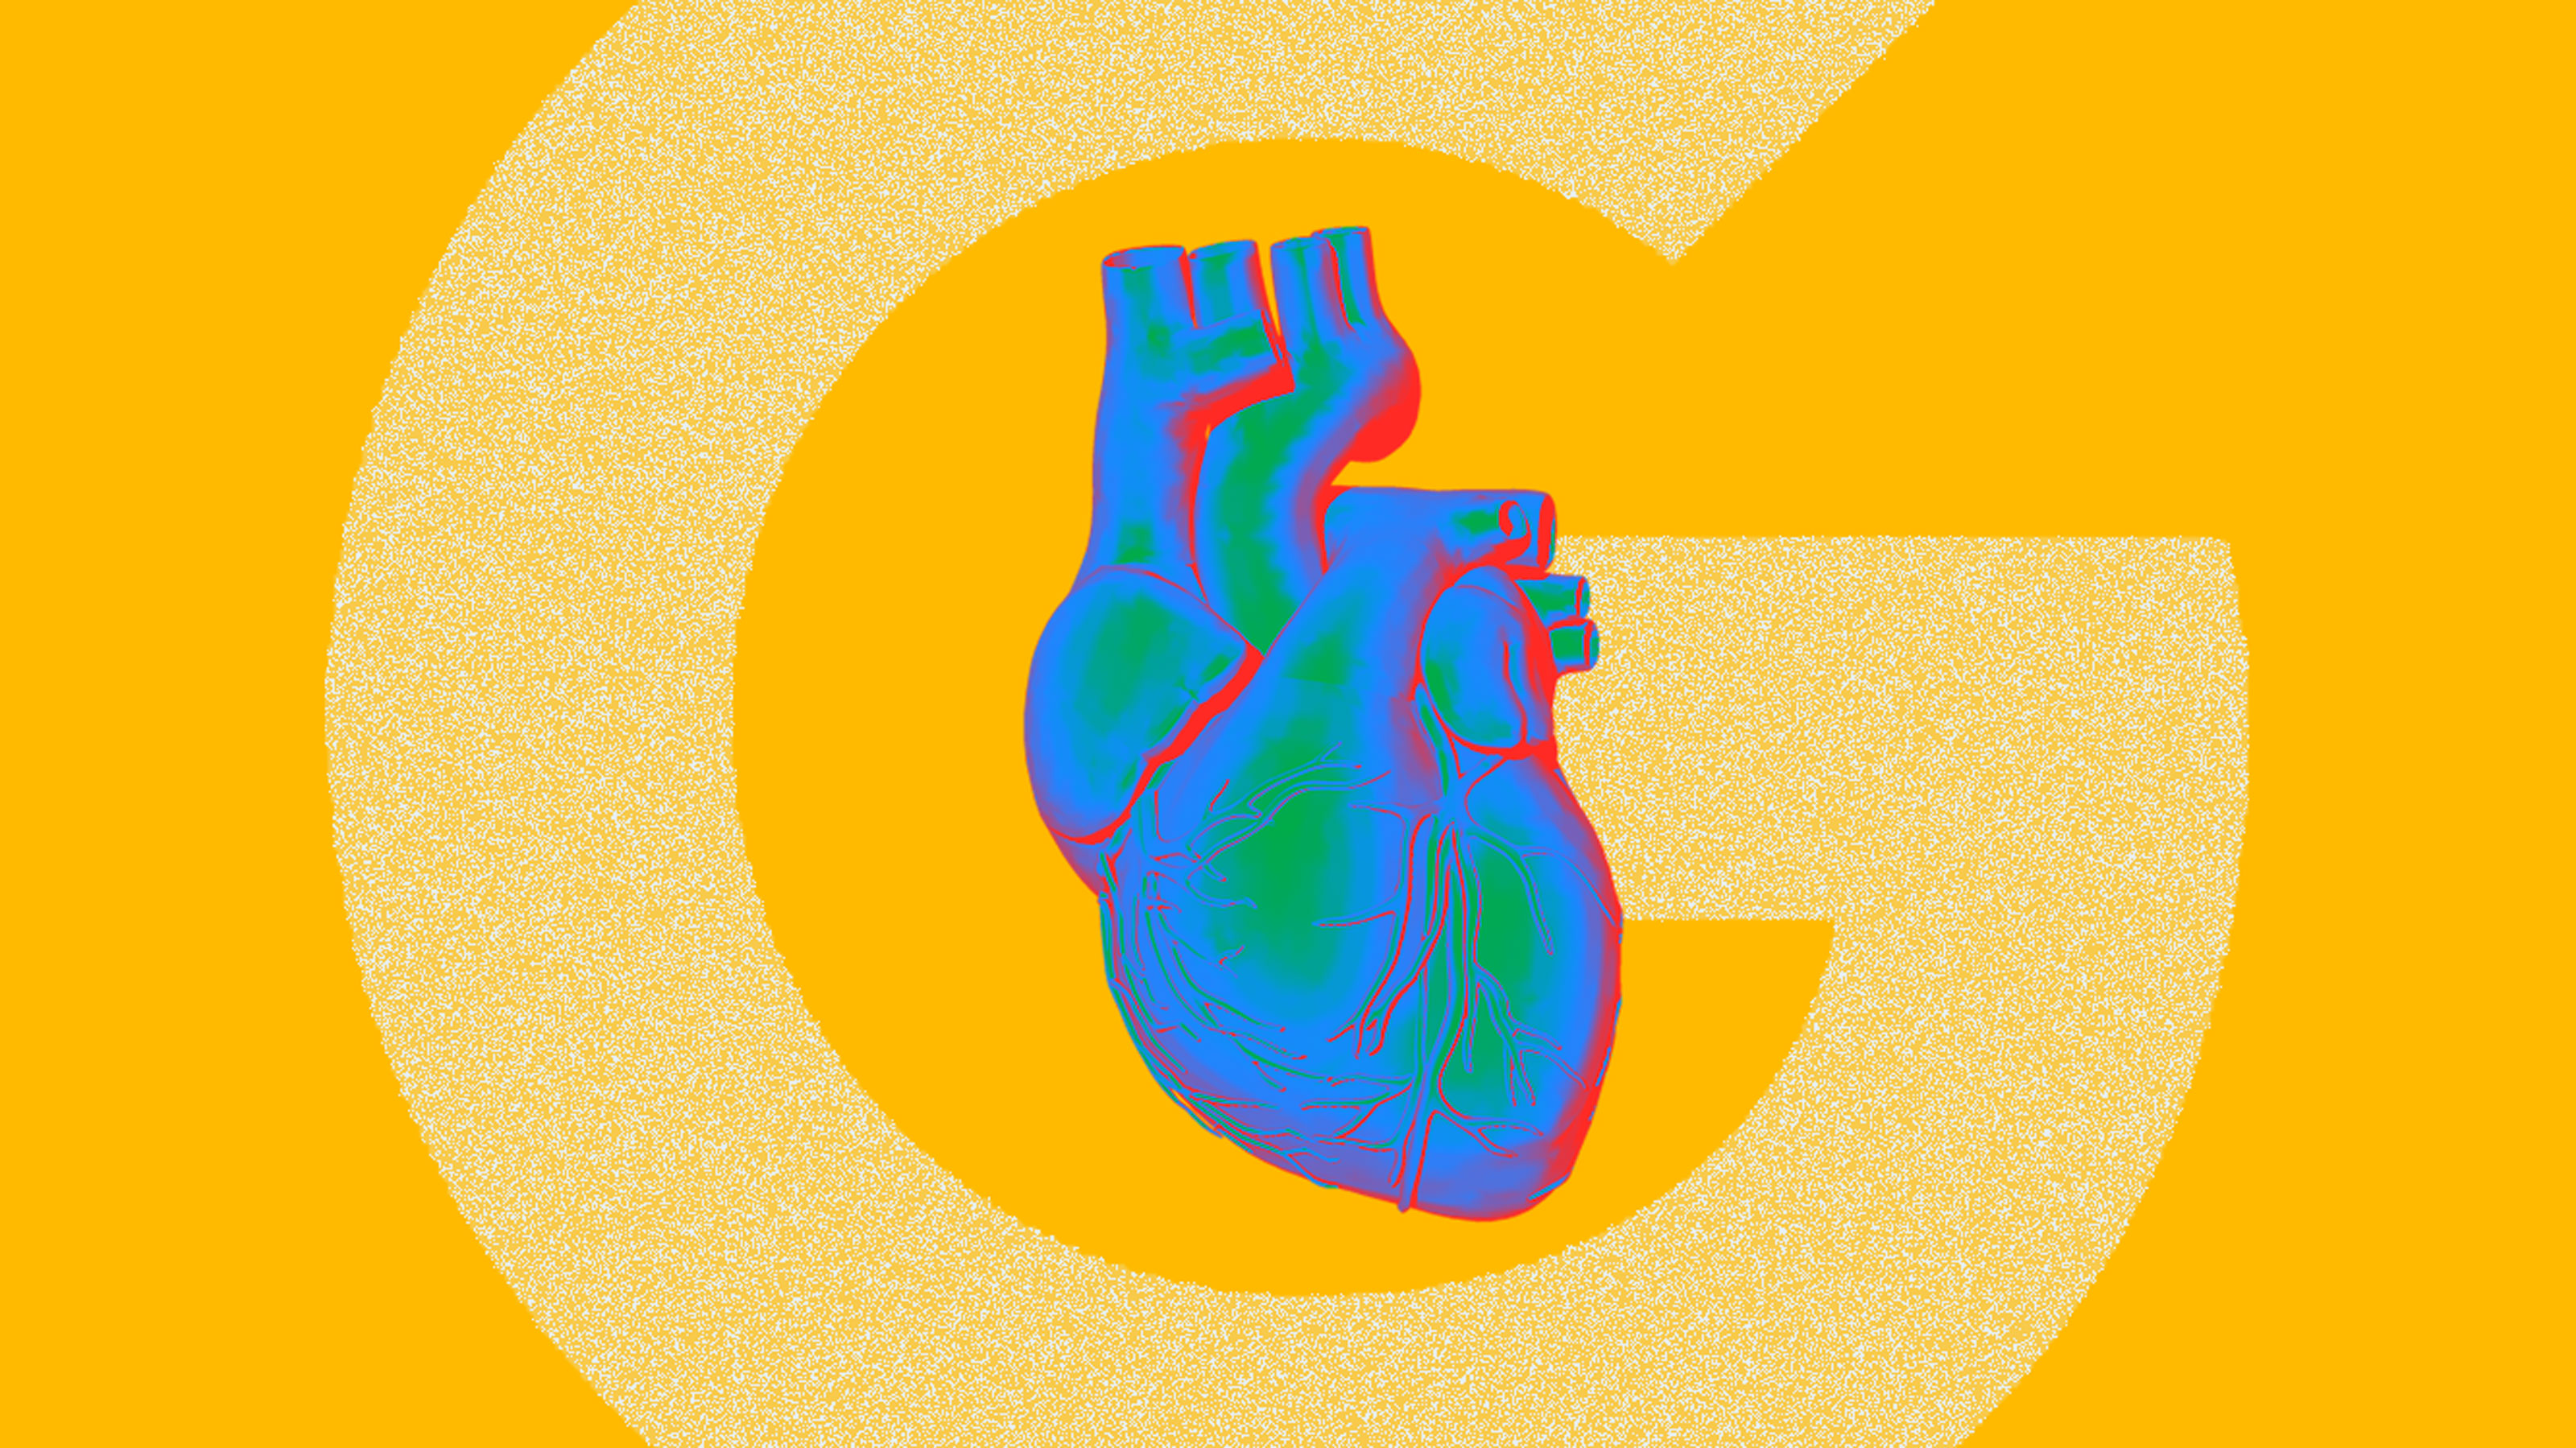 An illustration of a heart with the google logo behind